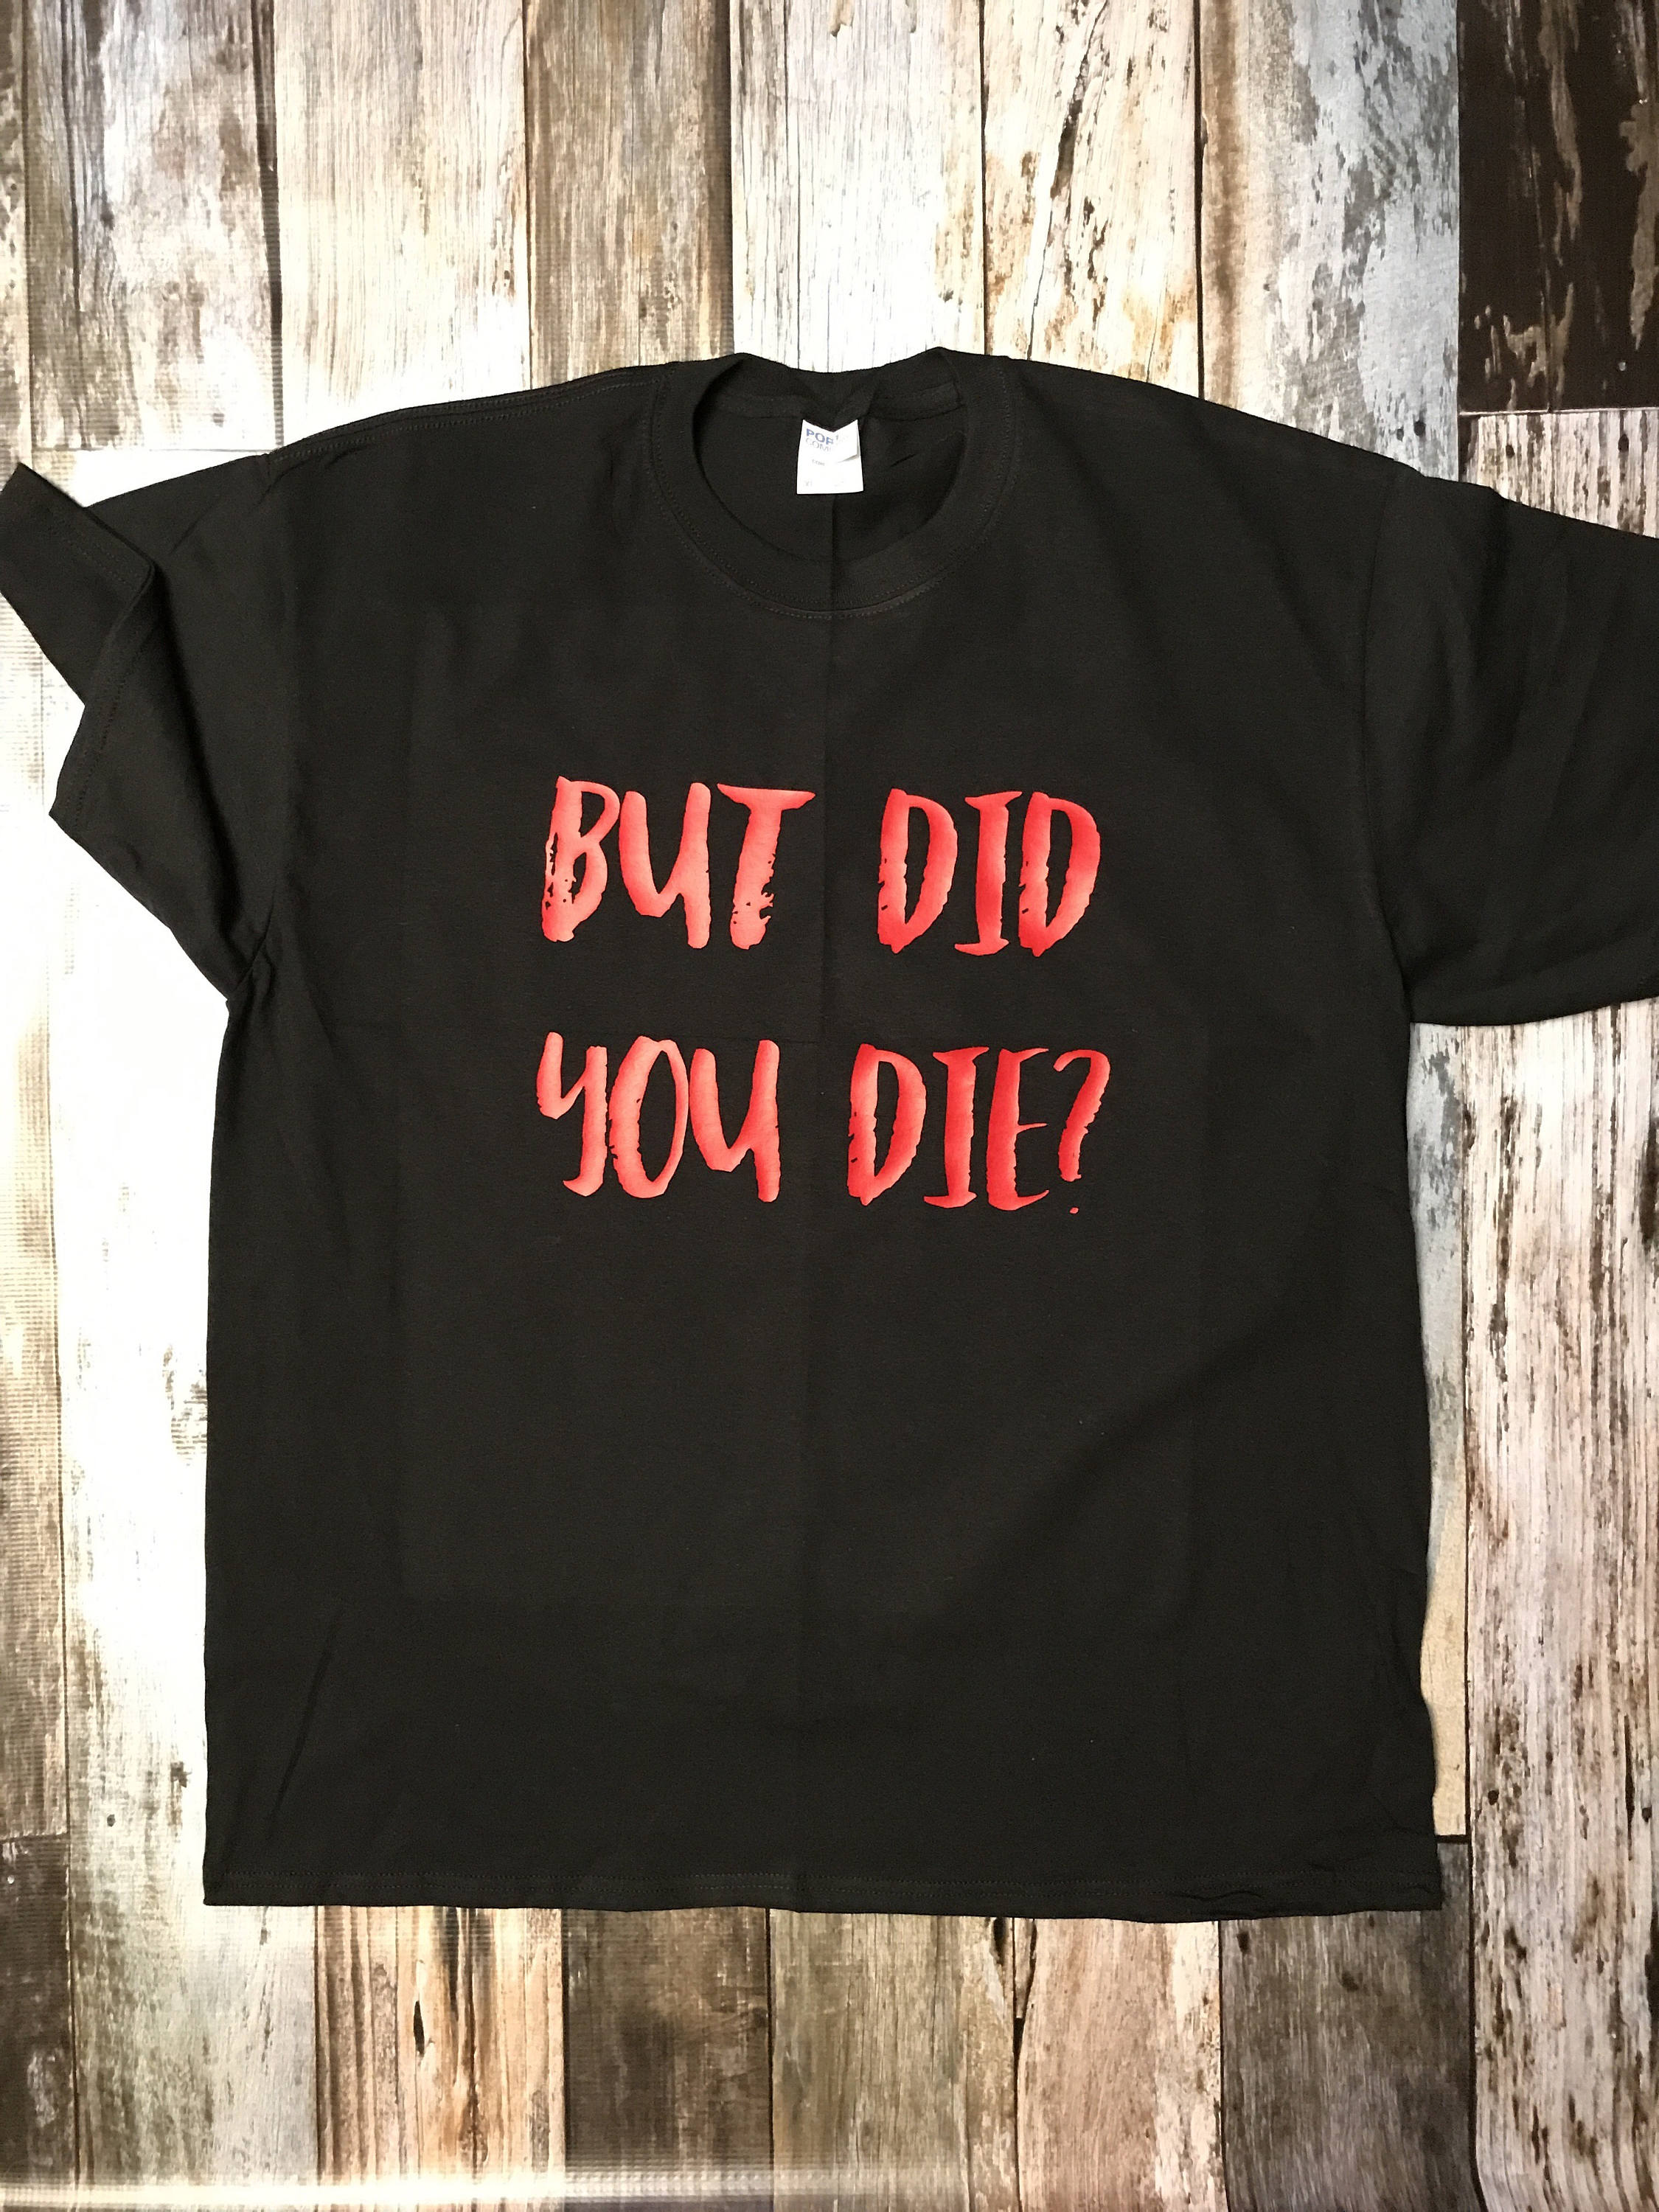 but did you die t shirt funny t shirt sayings funny t